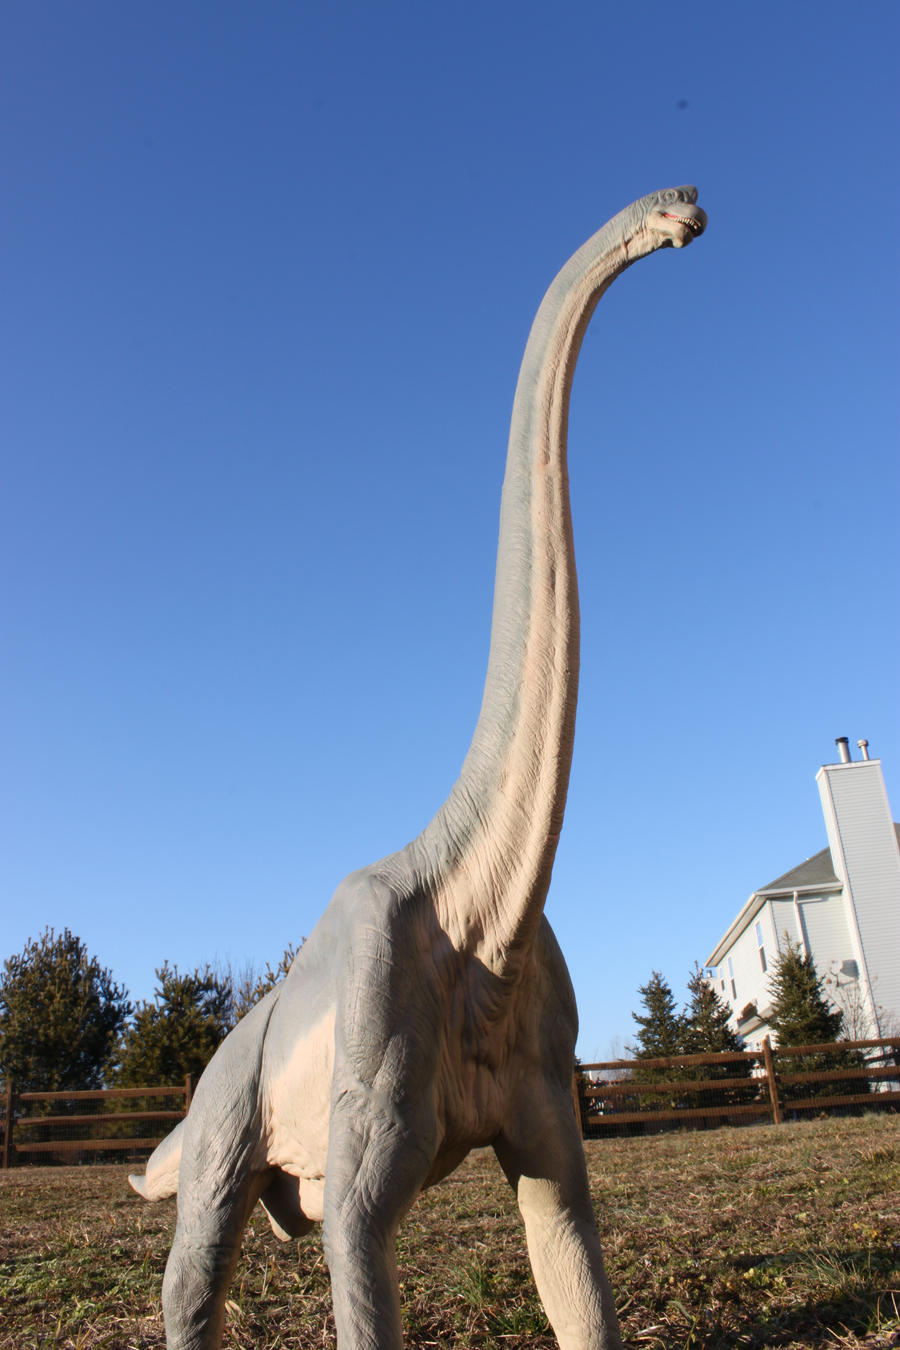 brachiosaurus jurassic park - photo #21